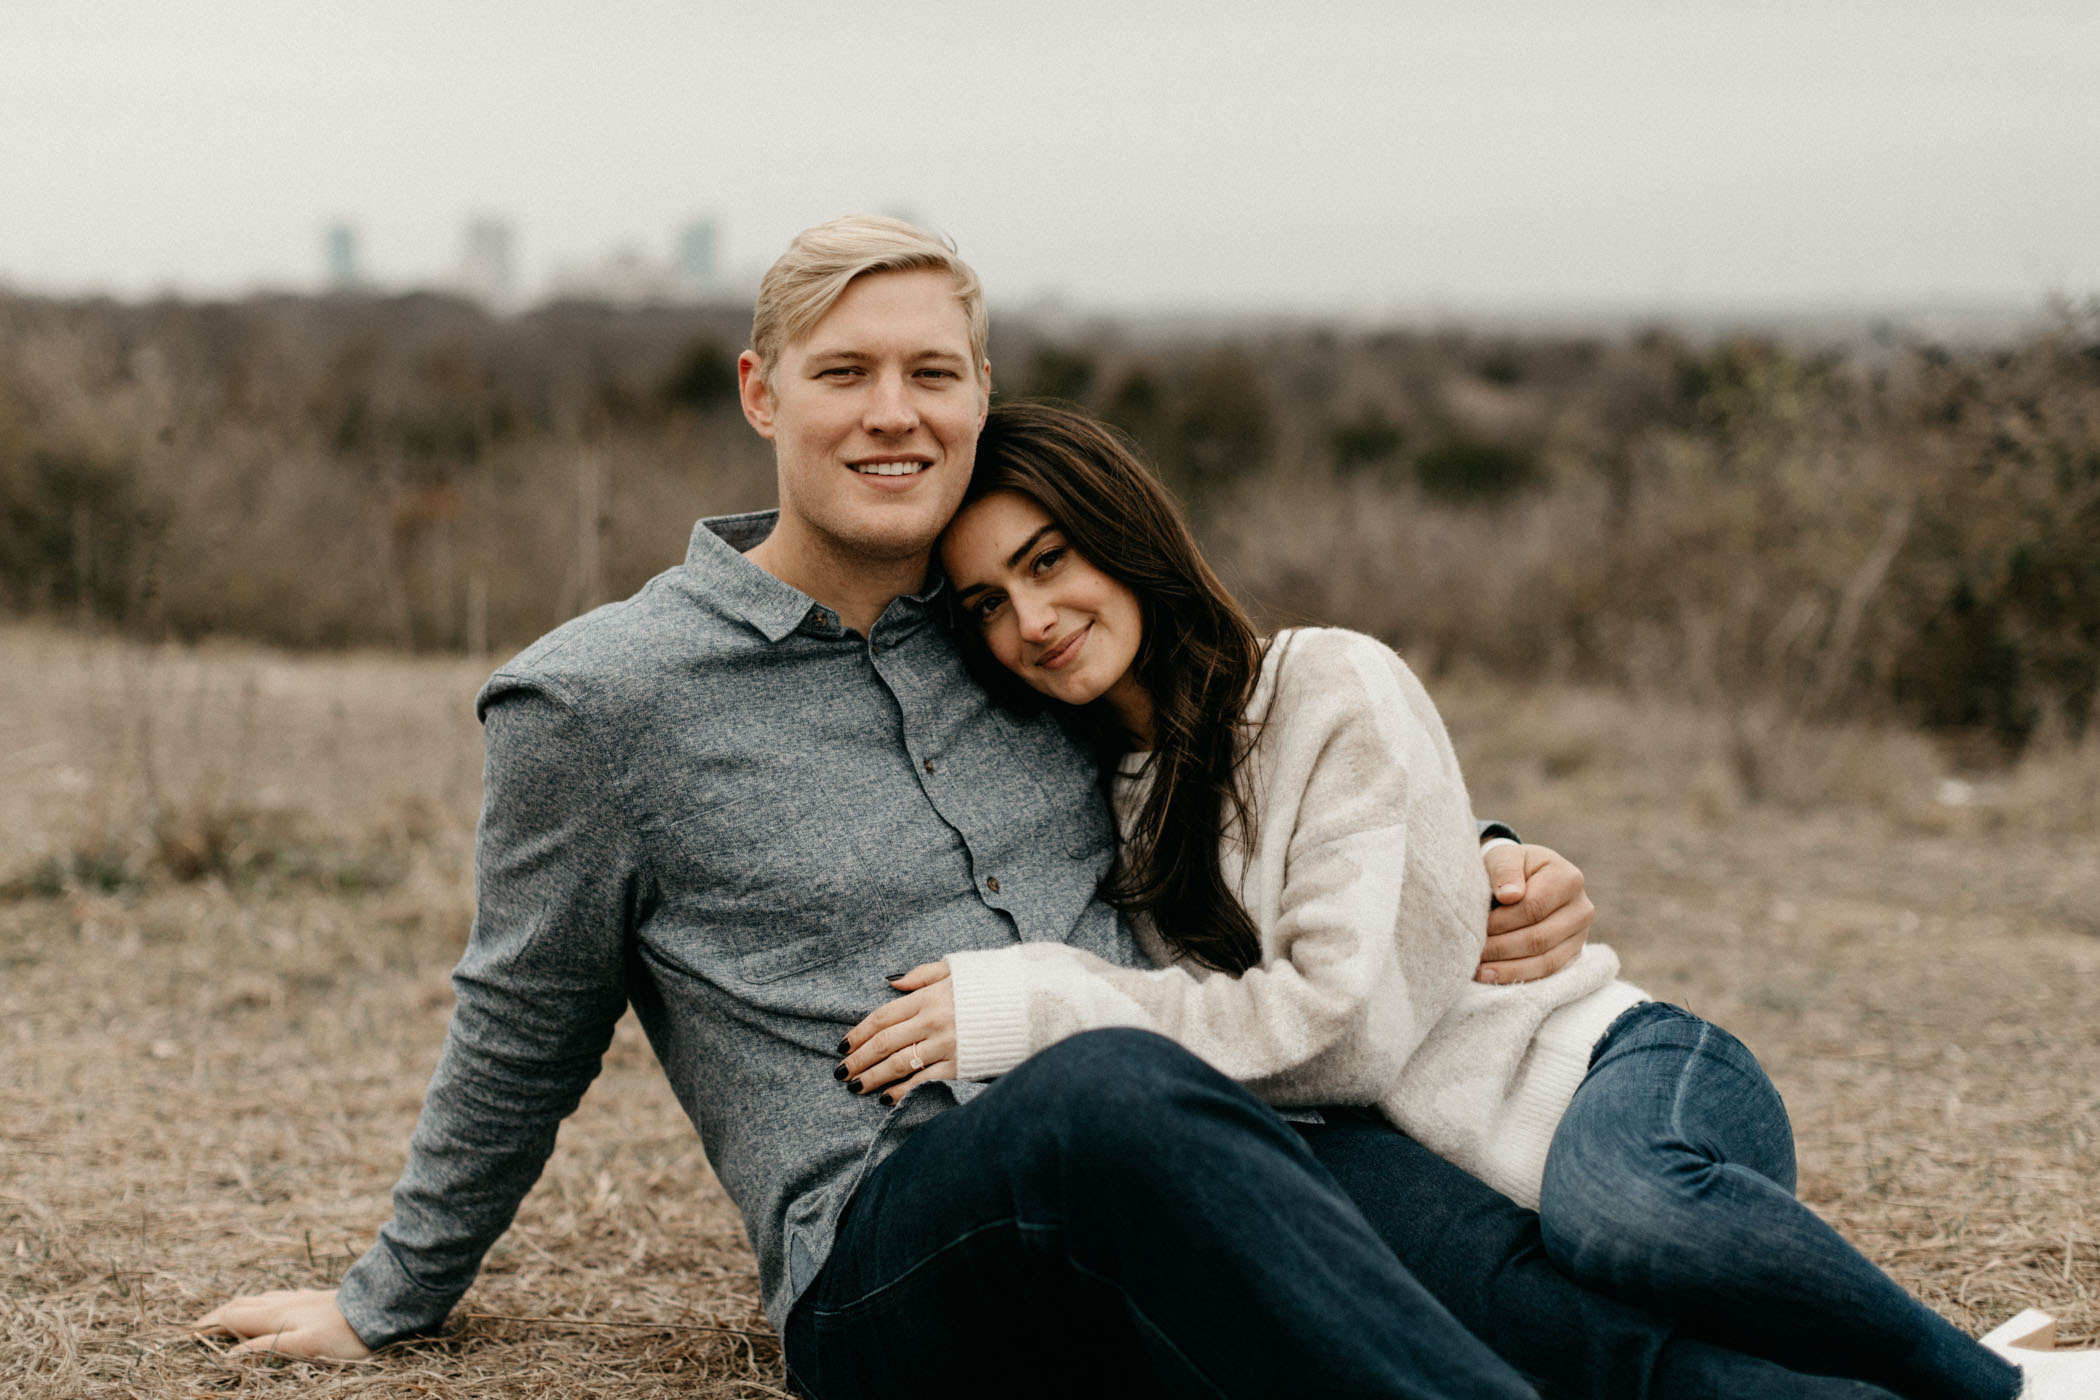 couple sitting in the grass and smiling during engagement session